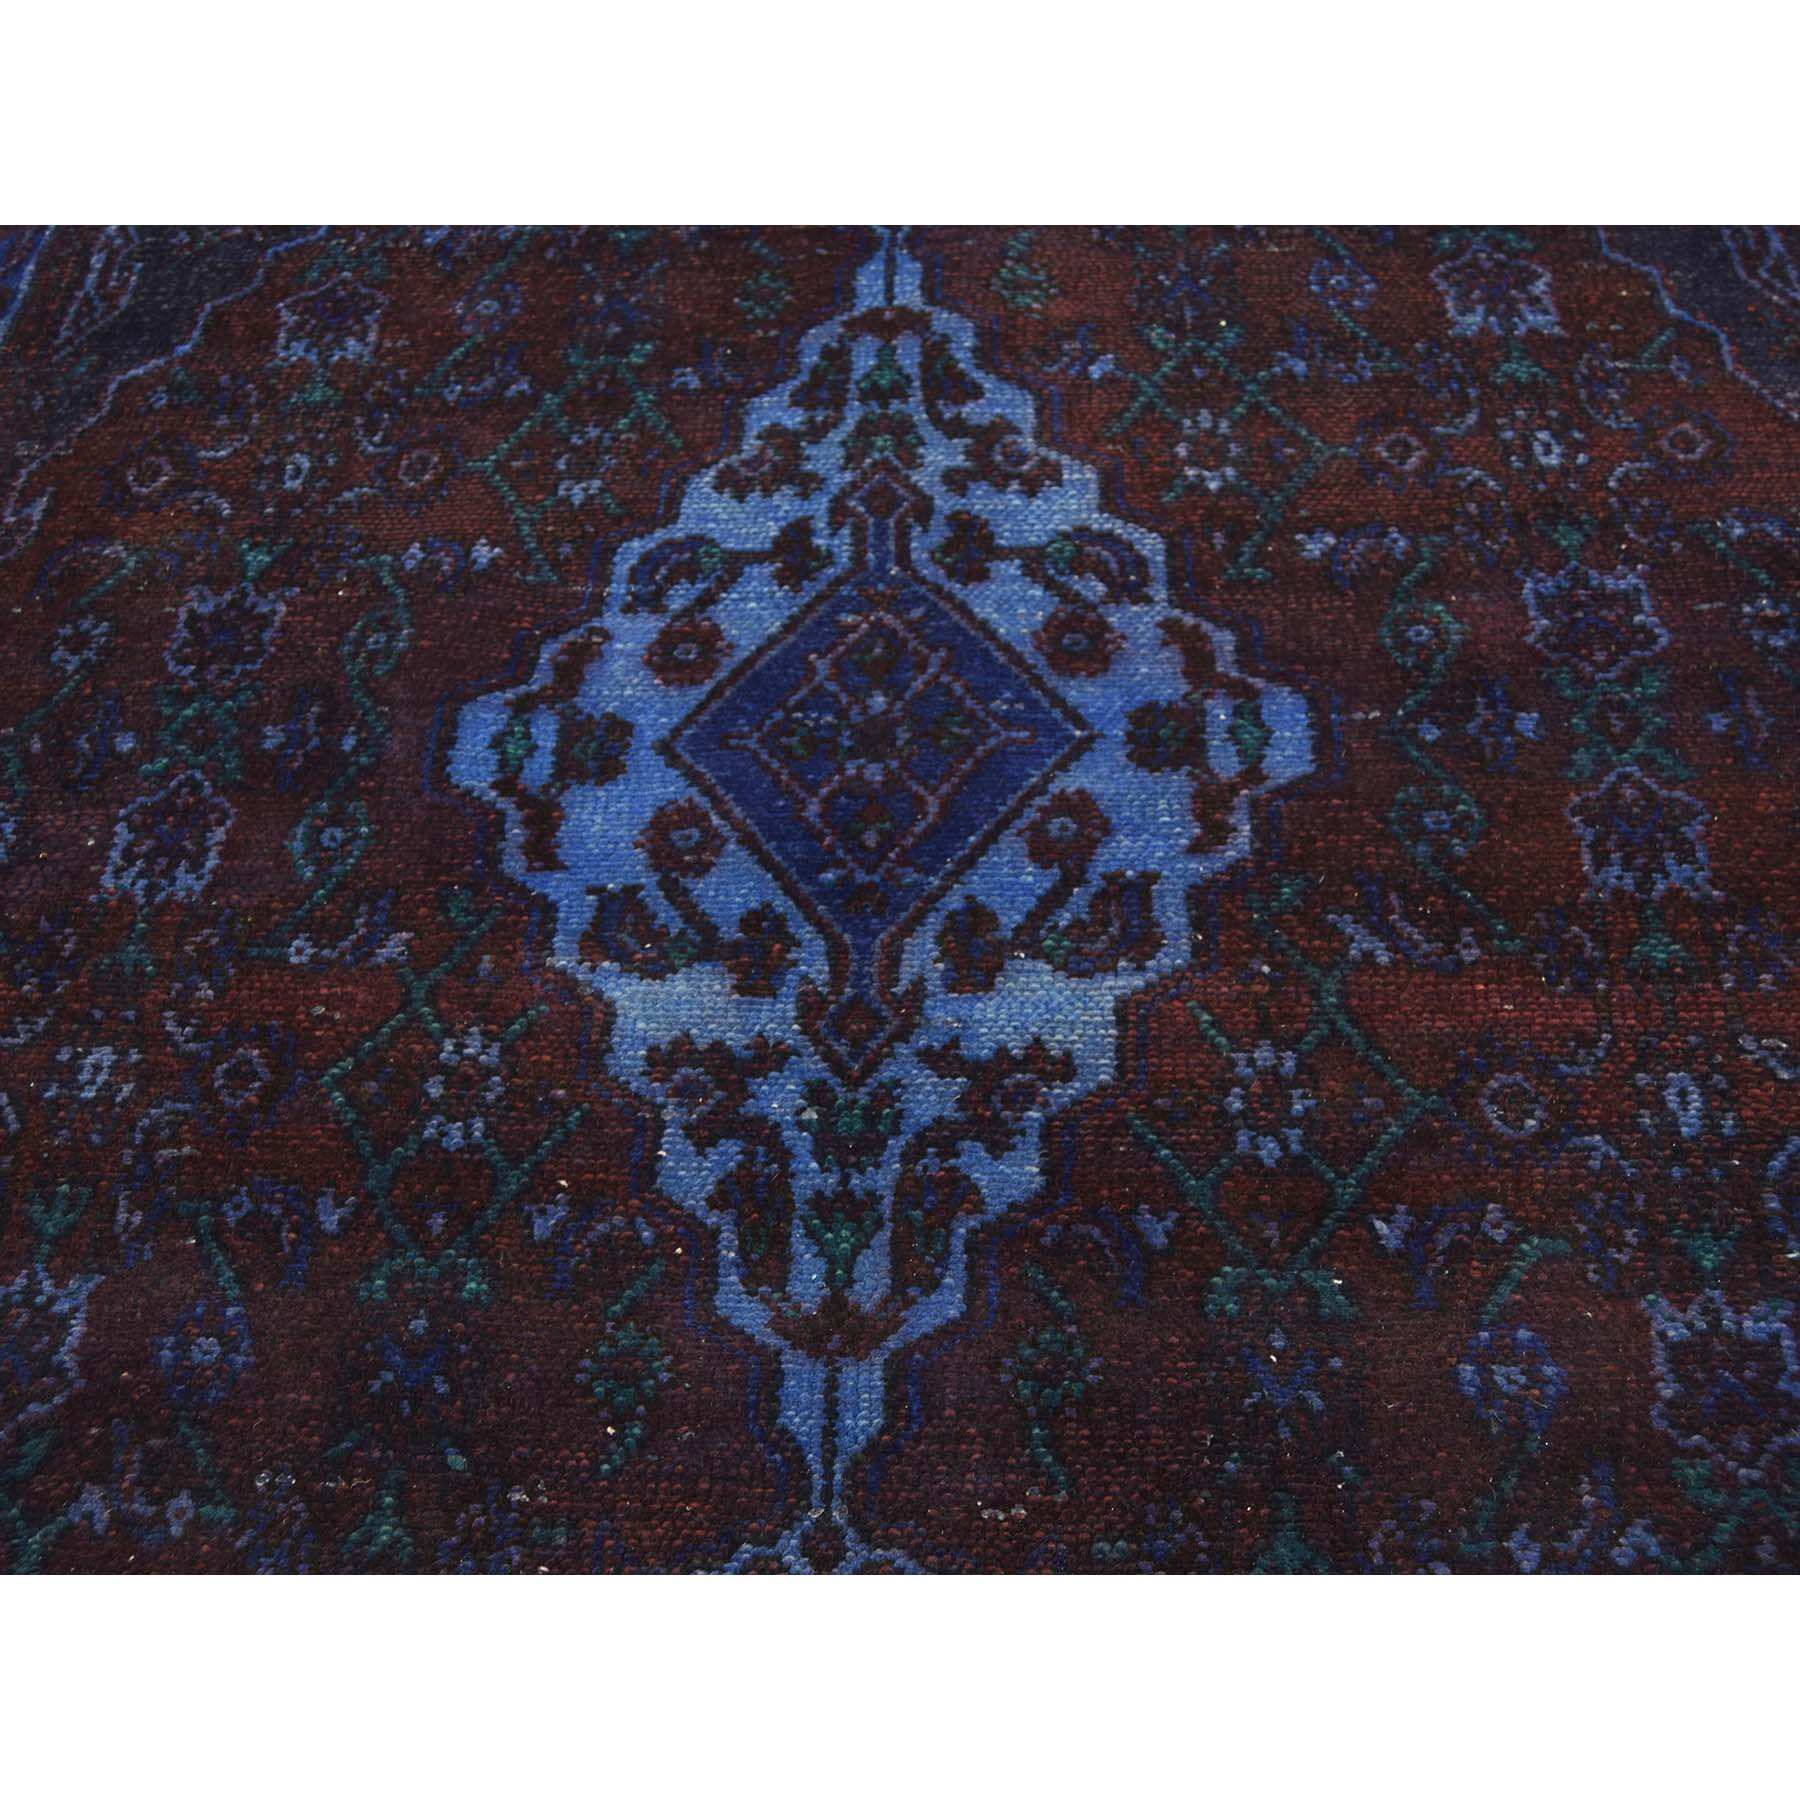 6-10--x10- Vintage Overdyed Persian Bibikabad Hand-Knotted Oriental Rug